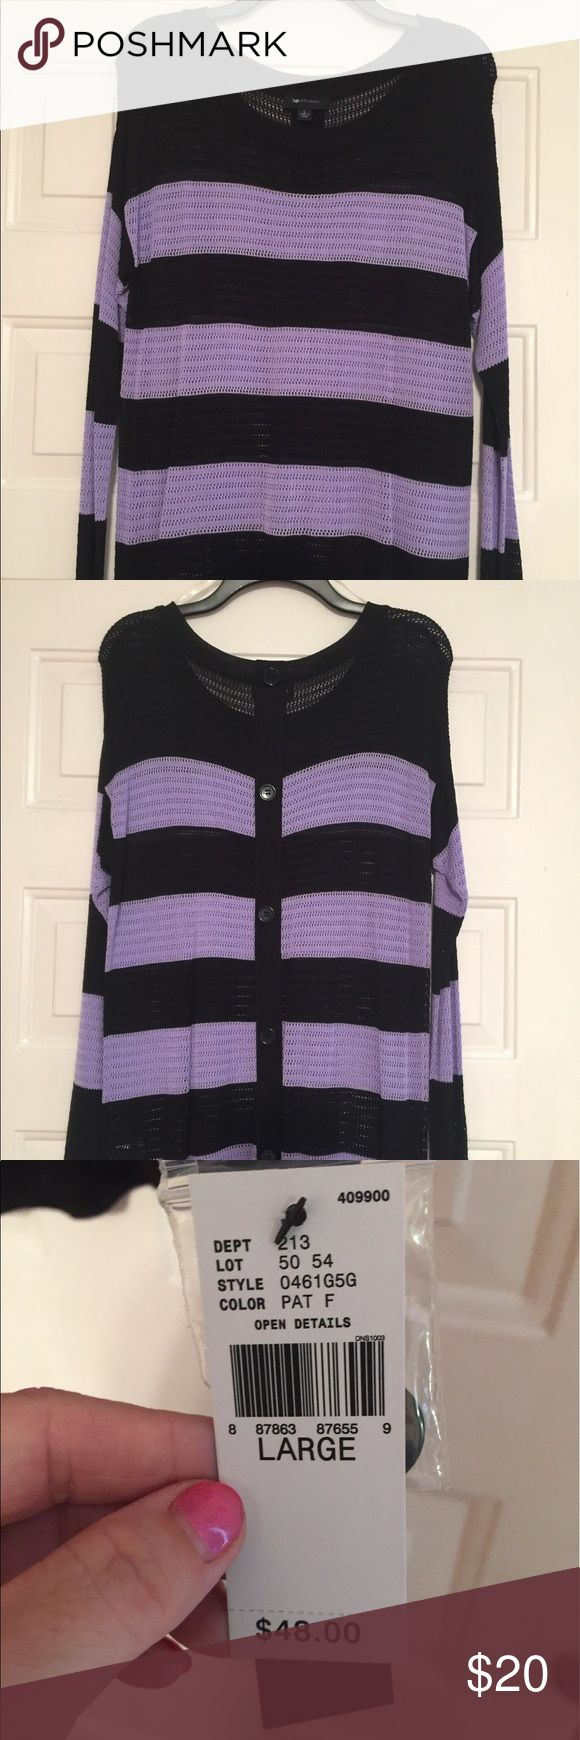 Black and purple long-sleeve top Black and purple long-sleeve top.  Smoke-free home. AB Studio Tops Blouses